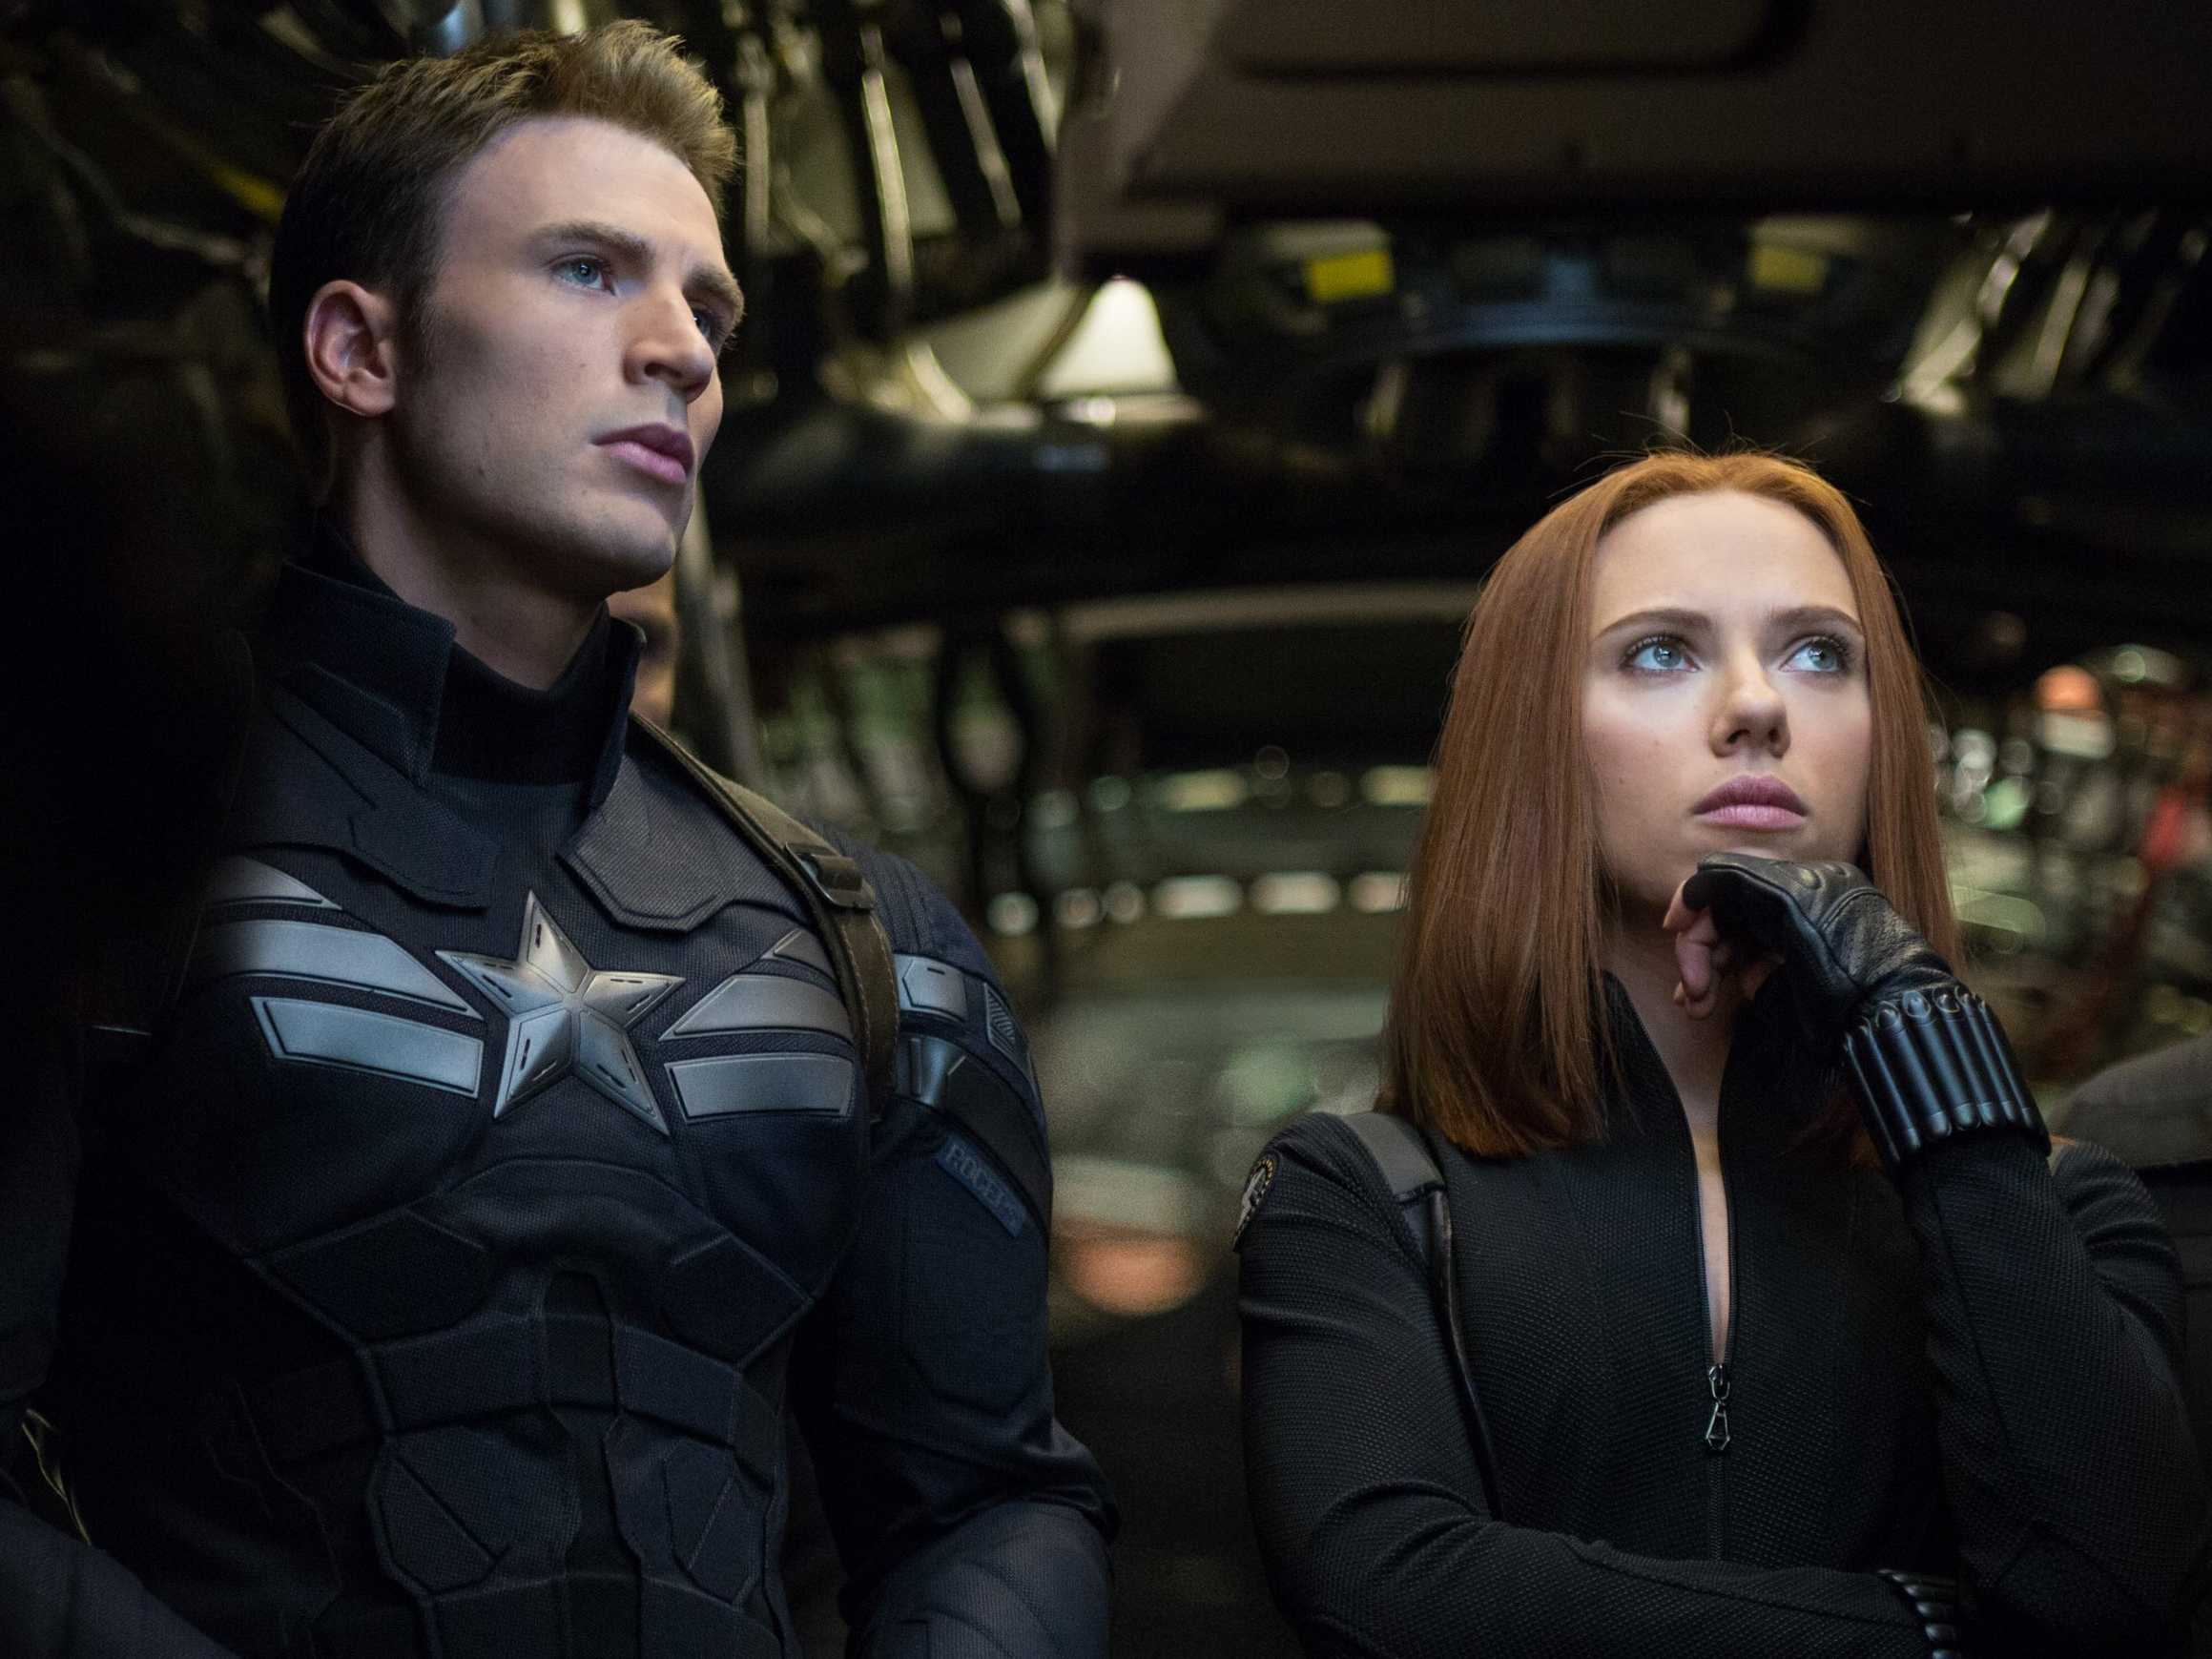 'Captain America: The Winter Soldier' a brutally efficient new entry in the Marvel Cinematic Universe